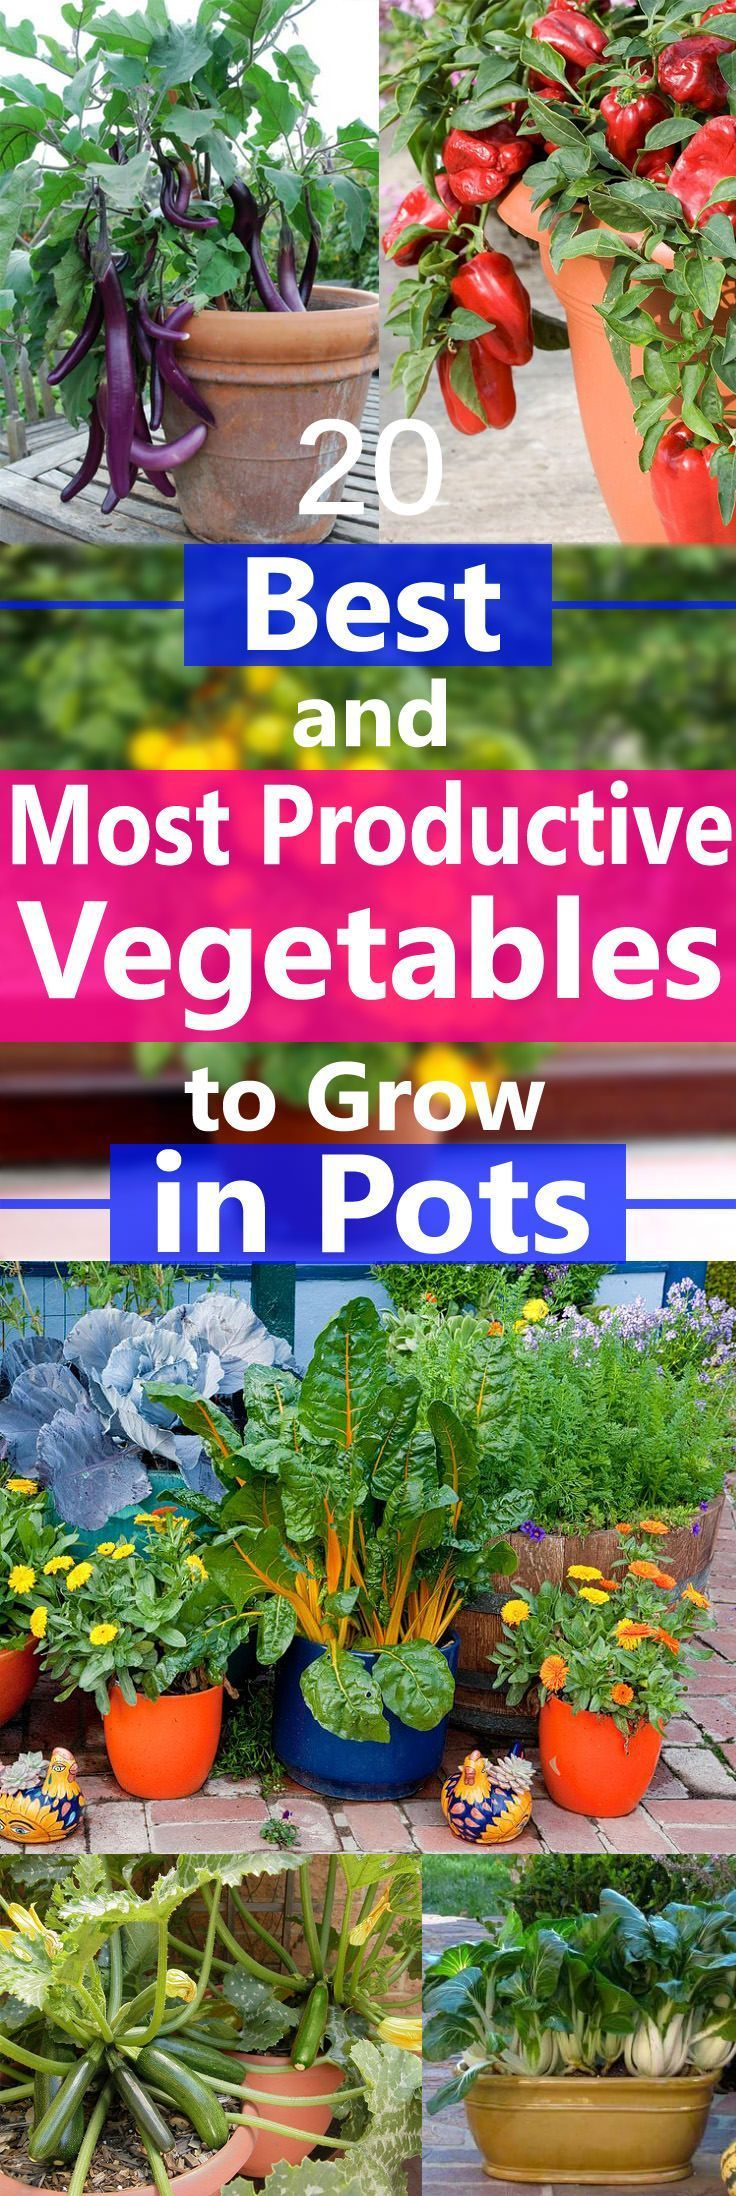 Vegetable Garden Ideas For Apartments 25+ best patio gardens ideas on pinterest | apartment patio